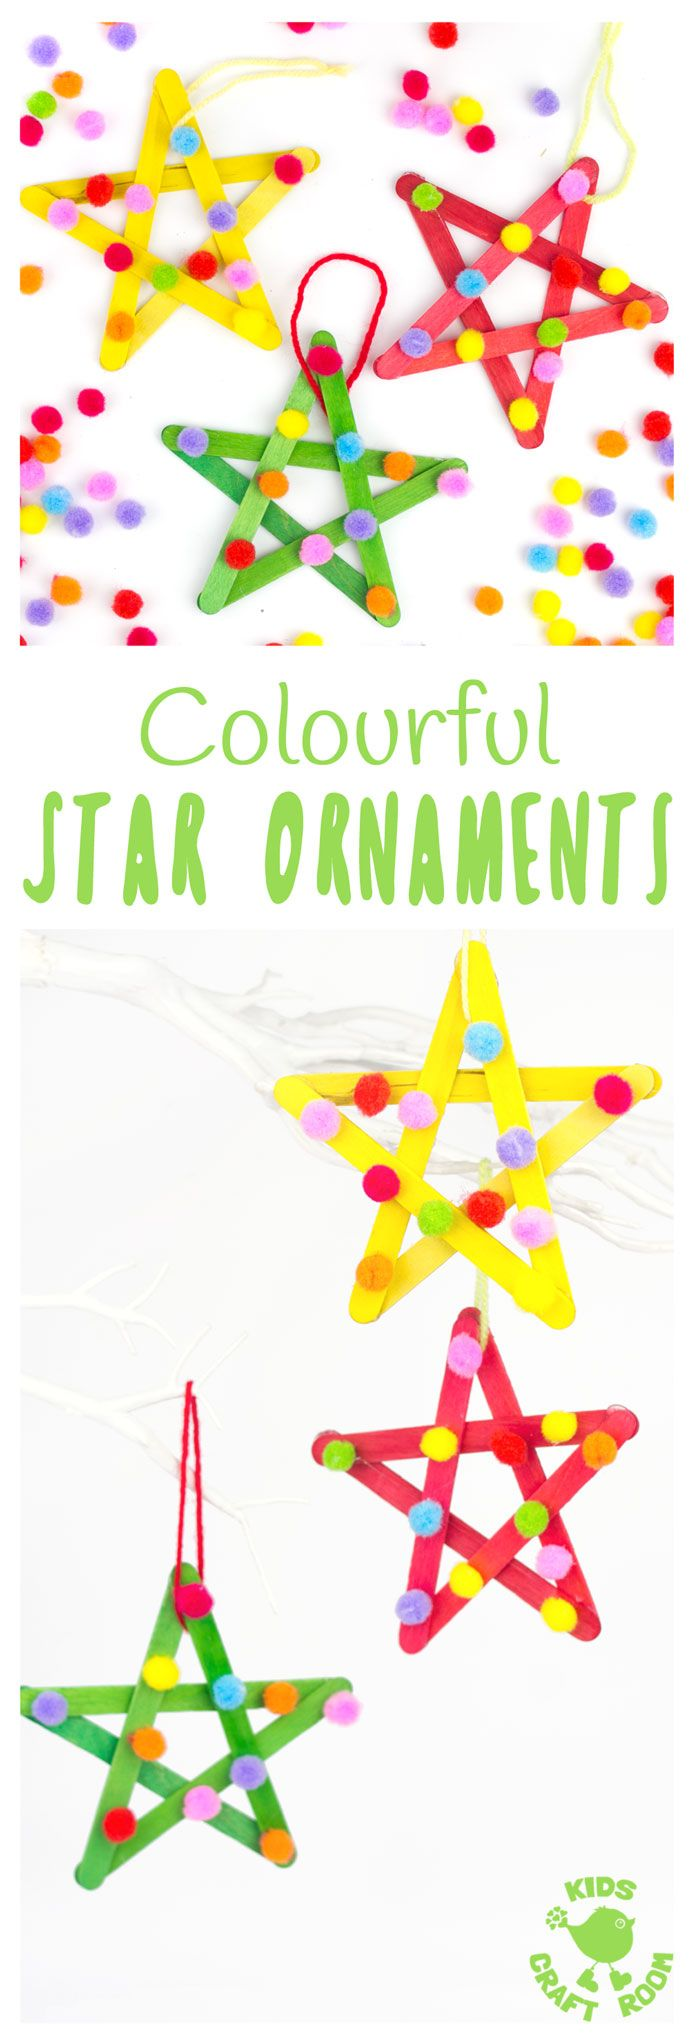 STAR ORNAMENTS - This colourful pom pom popsicle stick craft will look amazing hanging on your Christmas tree or as a bright and cheery star craft for a bedroom or nursery all year round. An easy and pretty Christmas craft for kids. #stars #starcraft #popsiclestickstars #popsiclestickcraft #christmascraft #popsiclestick #craftsticks #kidscrafts #craftideasforkids #kidschristmascrafts #easykidscrafts #easycrafts #kidsactivities #pompoms #pompomcraft via @KidsCraftRoom